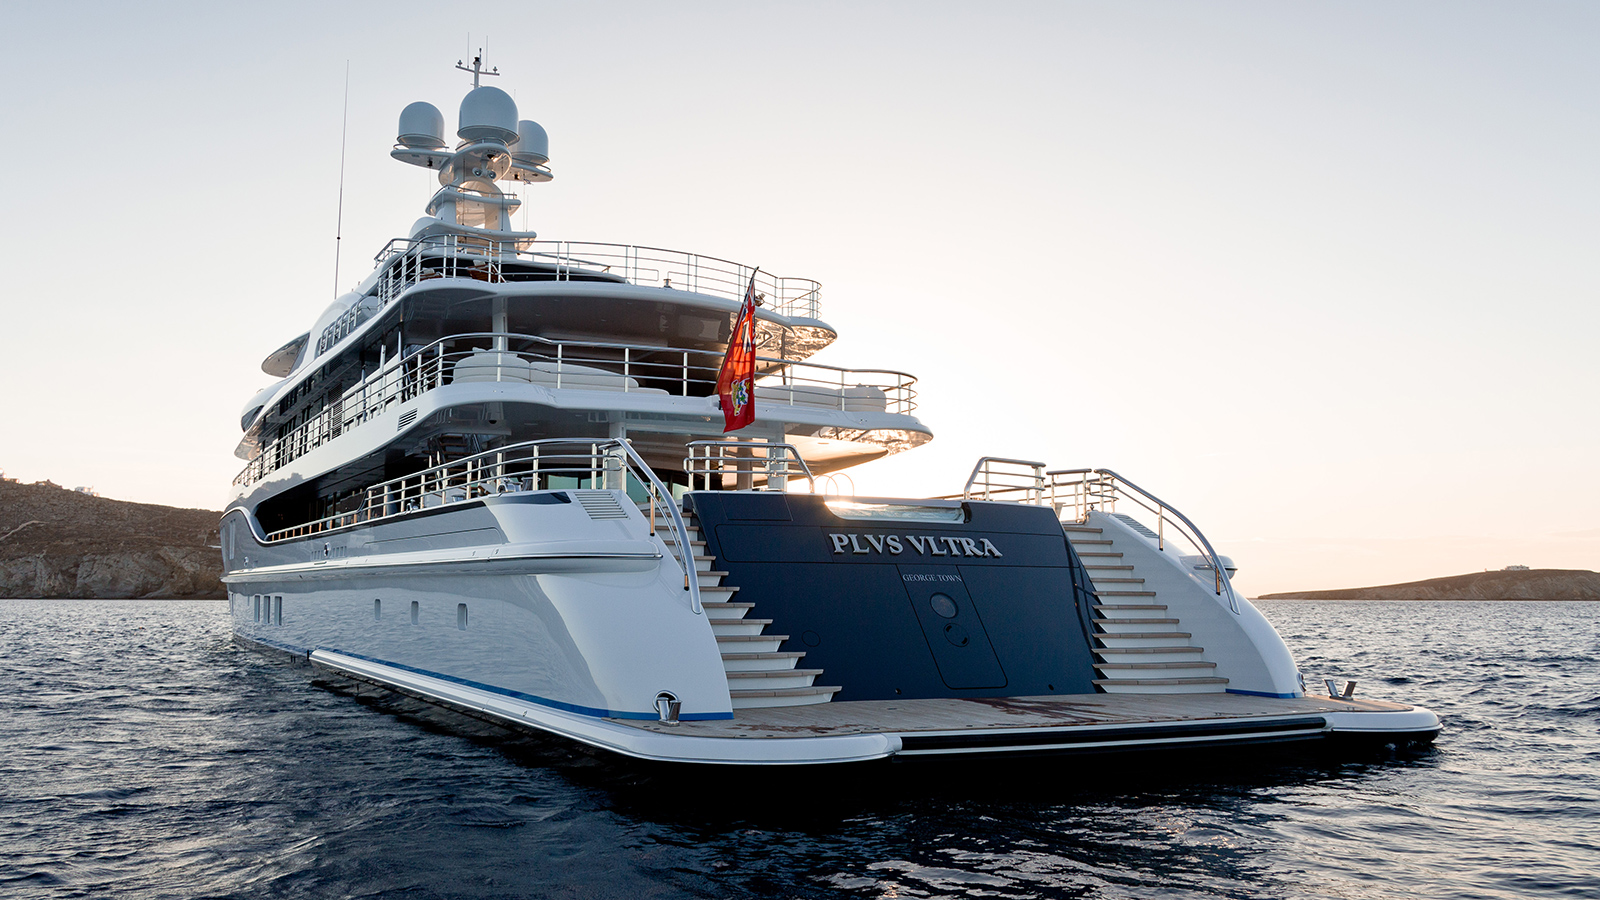 the-transom-of-the-amels-super-yacht-plvs-vltra